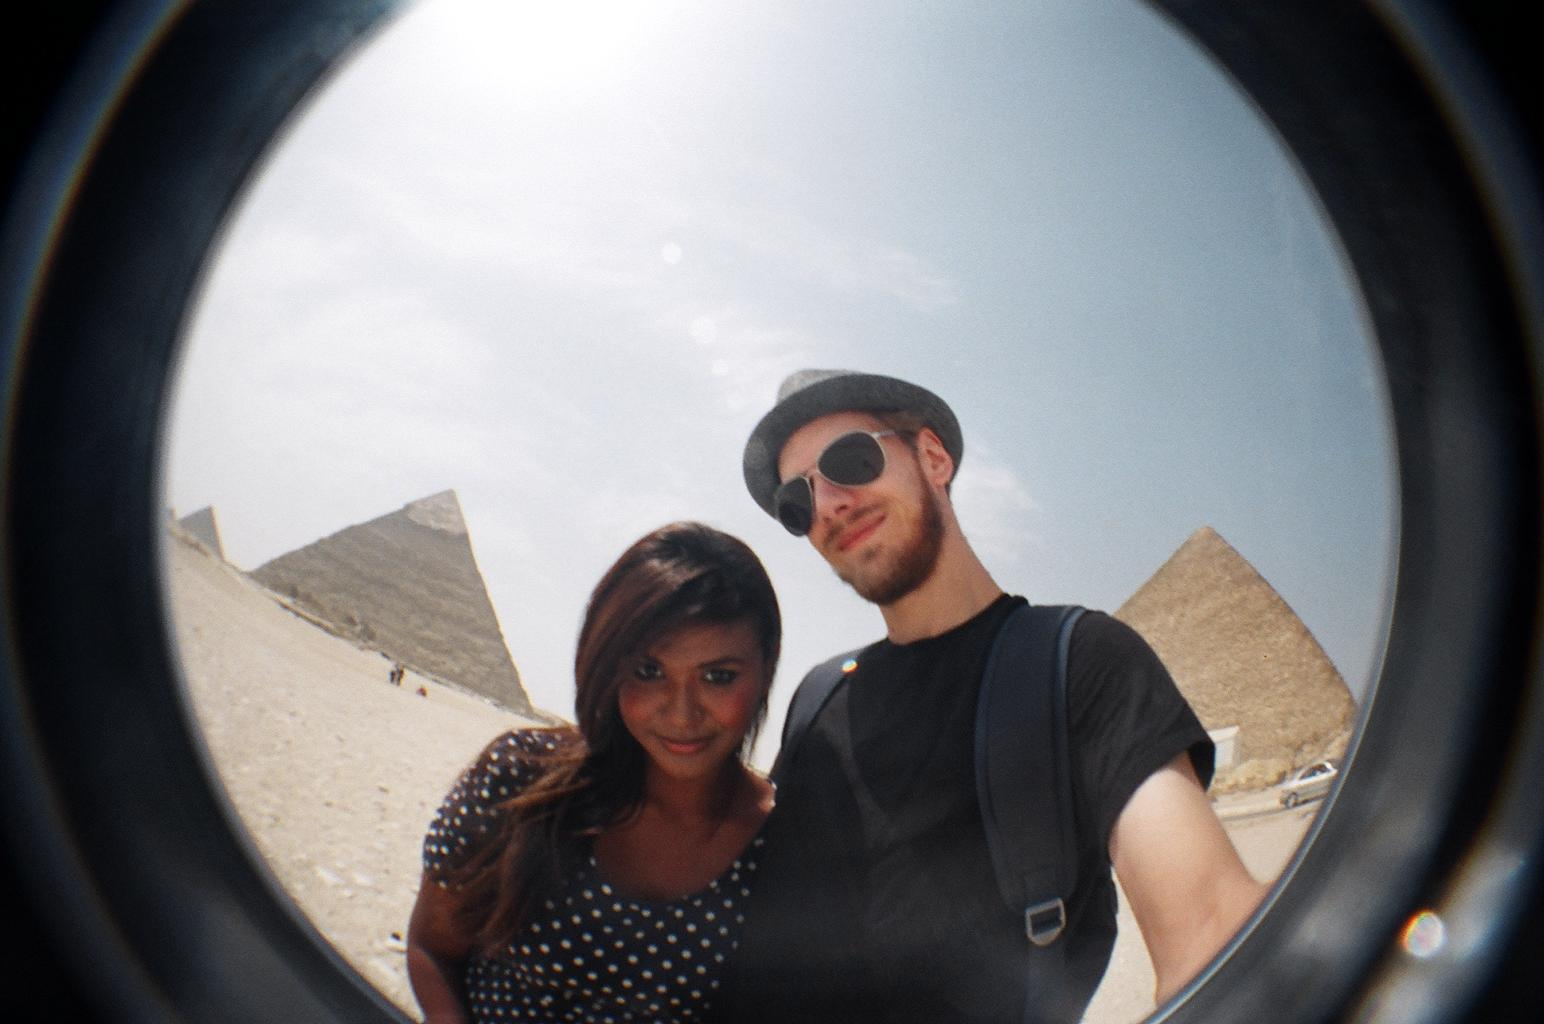 us and the pyramids